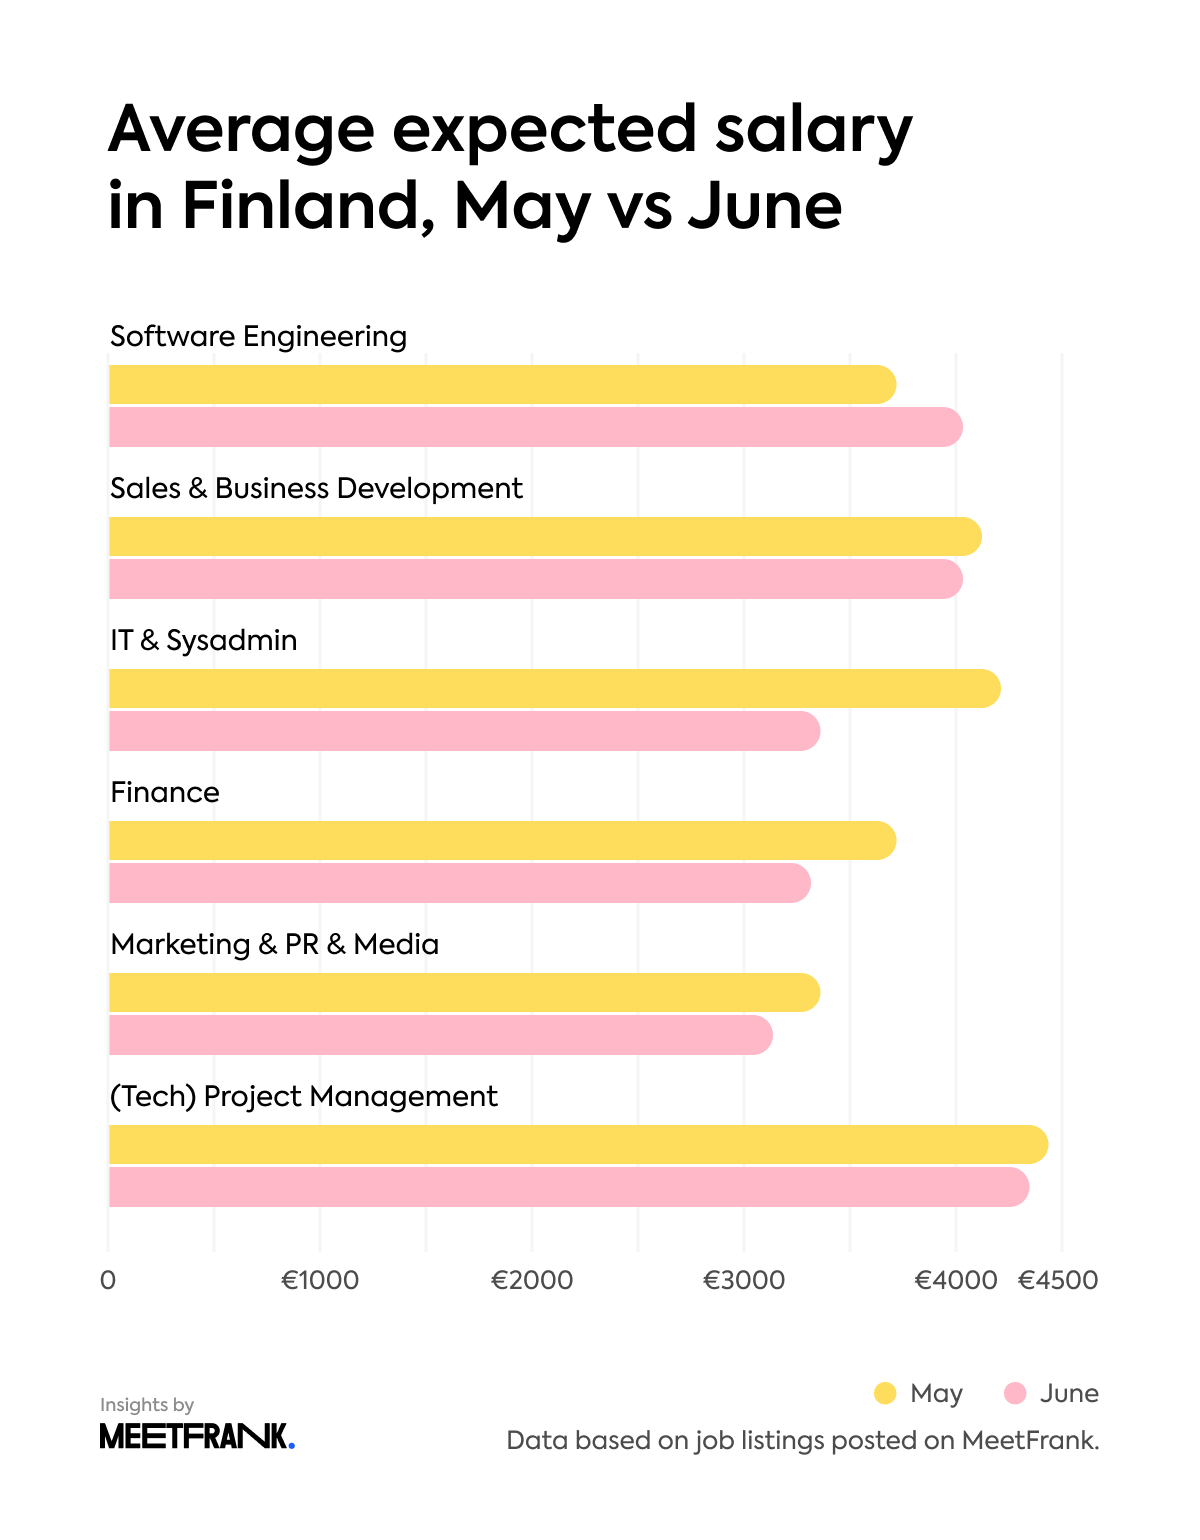 Average expected salary in Finland, May vs June